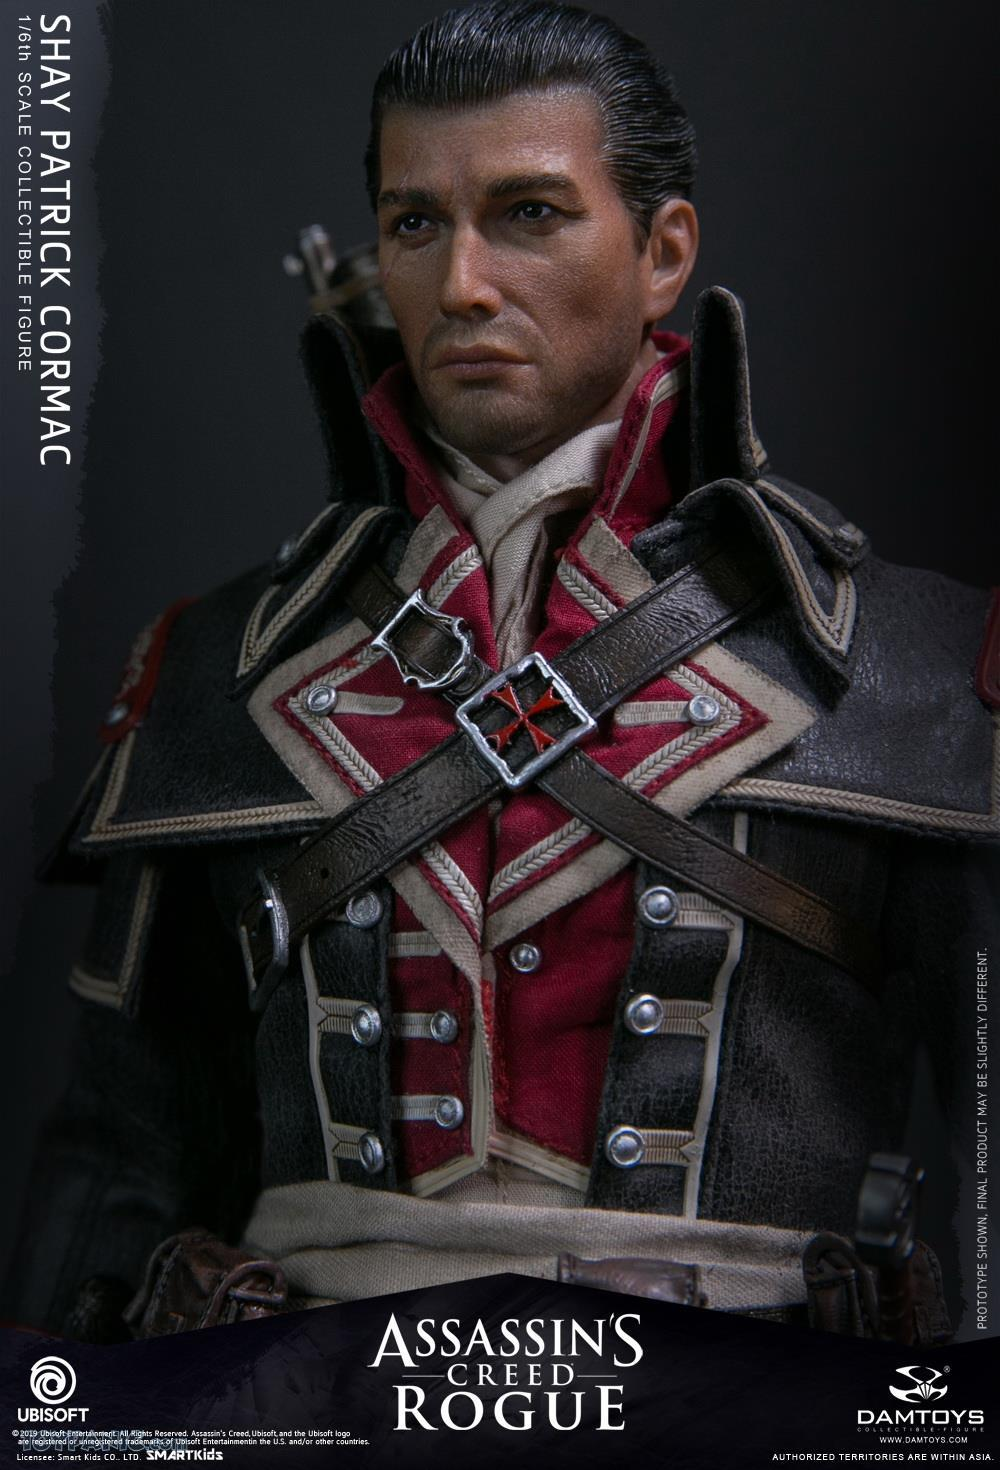 male - NEW PRODUCT: DAMTOYS: Assassins Creed Rogue - 1/6th scale Shay Patrick Cormac Collectible Figure 82220130